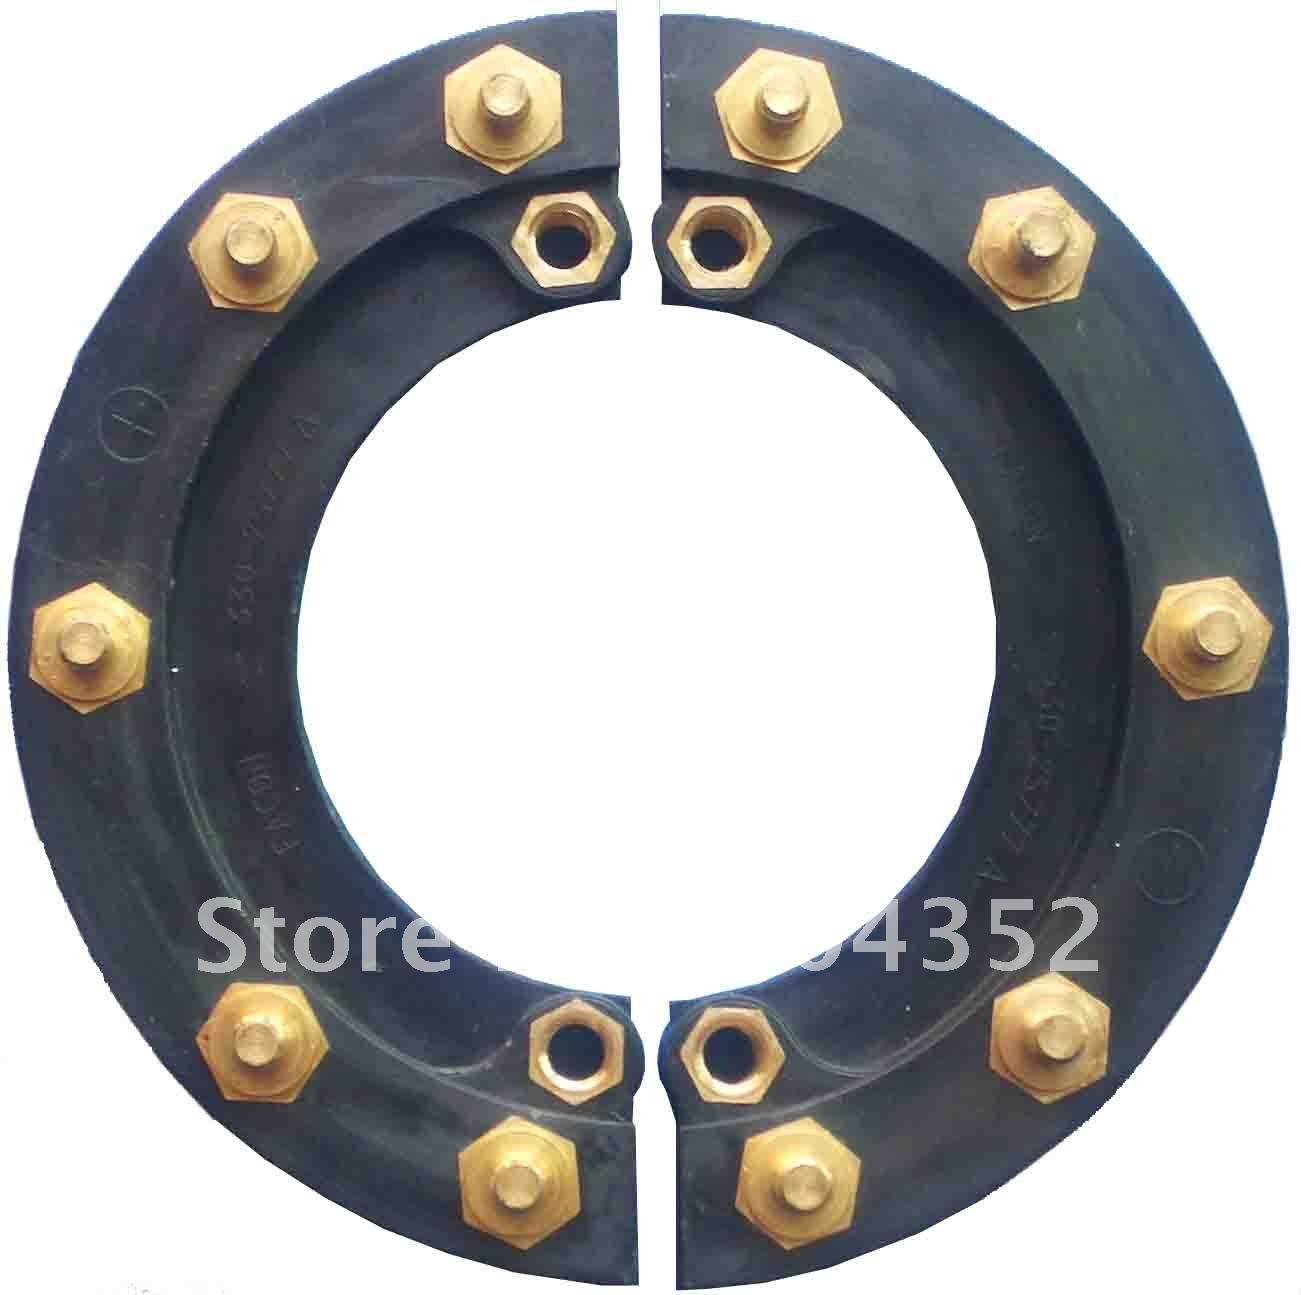 ФОТО Diode Bridge 330-25777 for New,Free shipping by DHL/FEDEX express